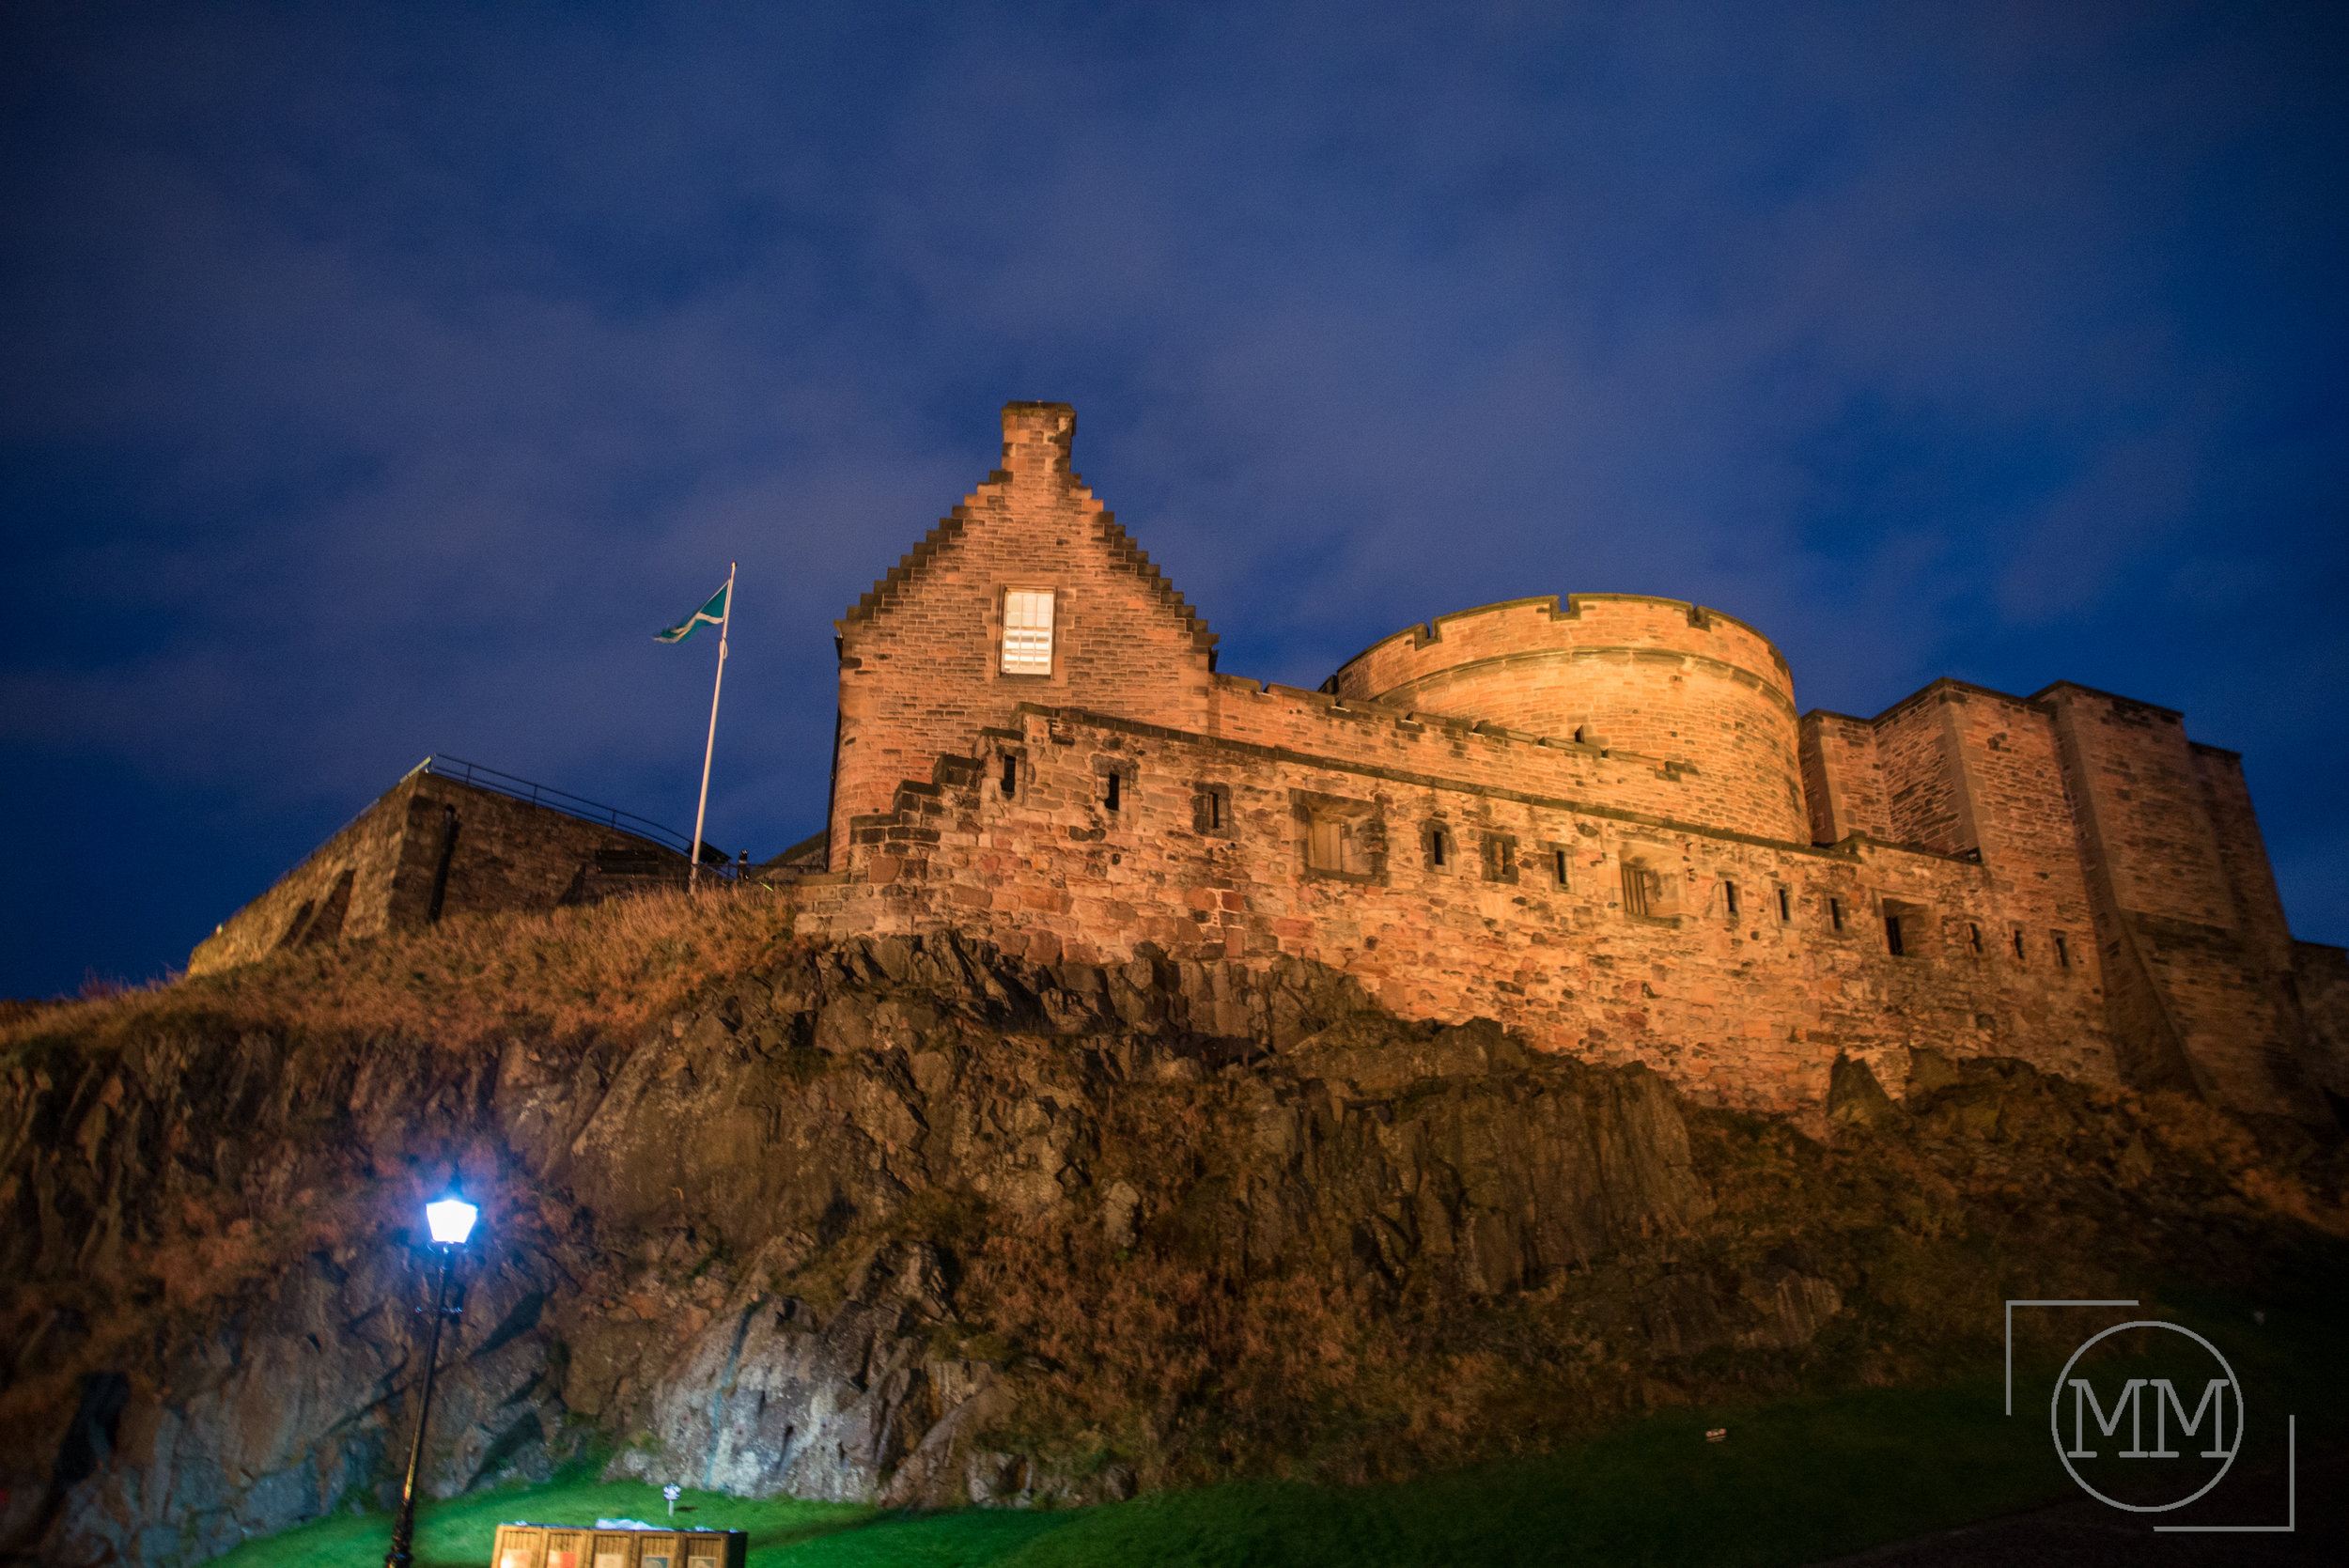 We then ended up being the last ones to leave the castle just after 5pm! We spent a good 2 hours there!